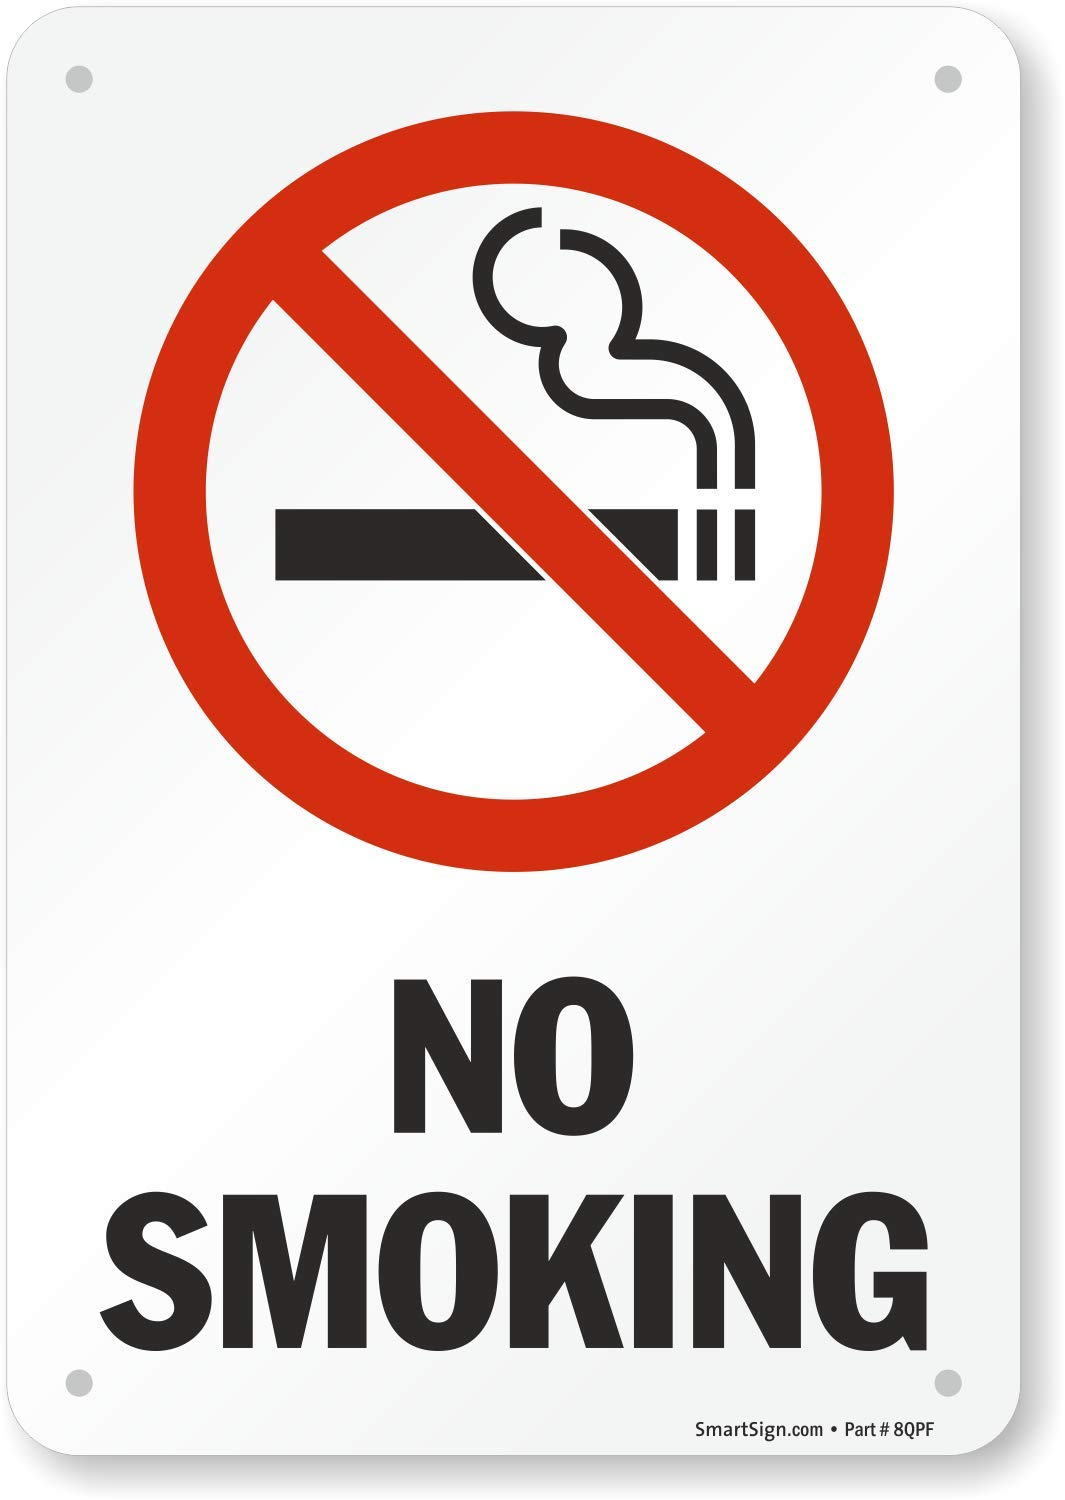 """SmartSign Aluminum Sign, Legend """"No Smoking"""" with Graphic, 10"""" high x 7"""" wide, Black/Red on White"""